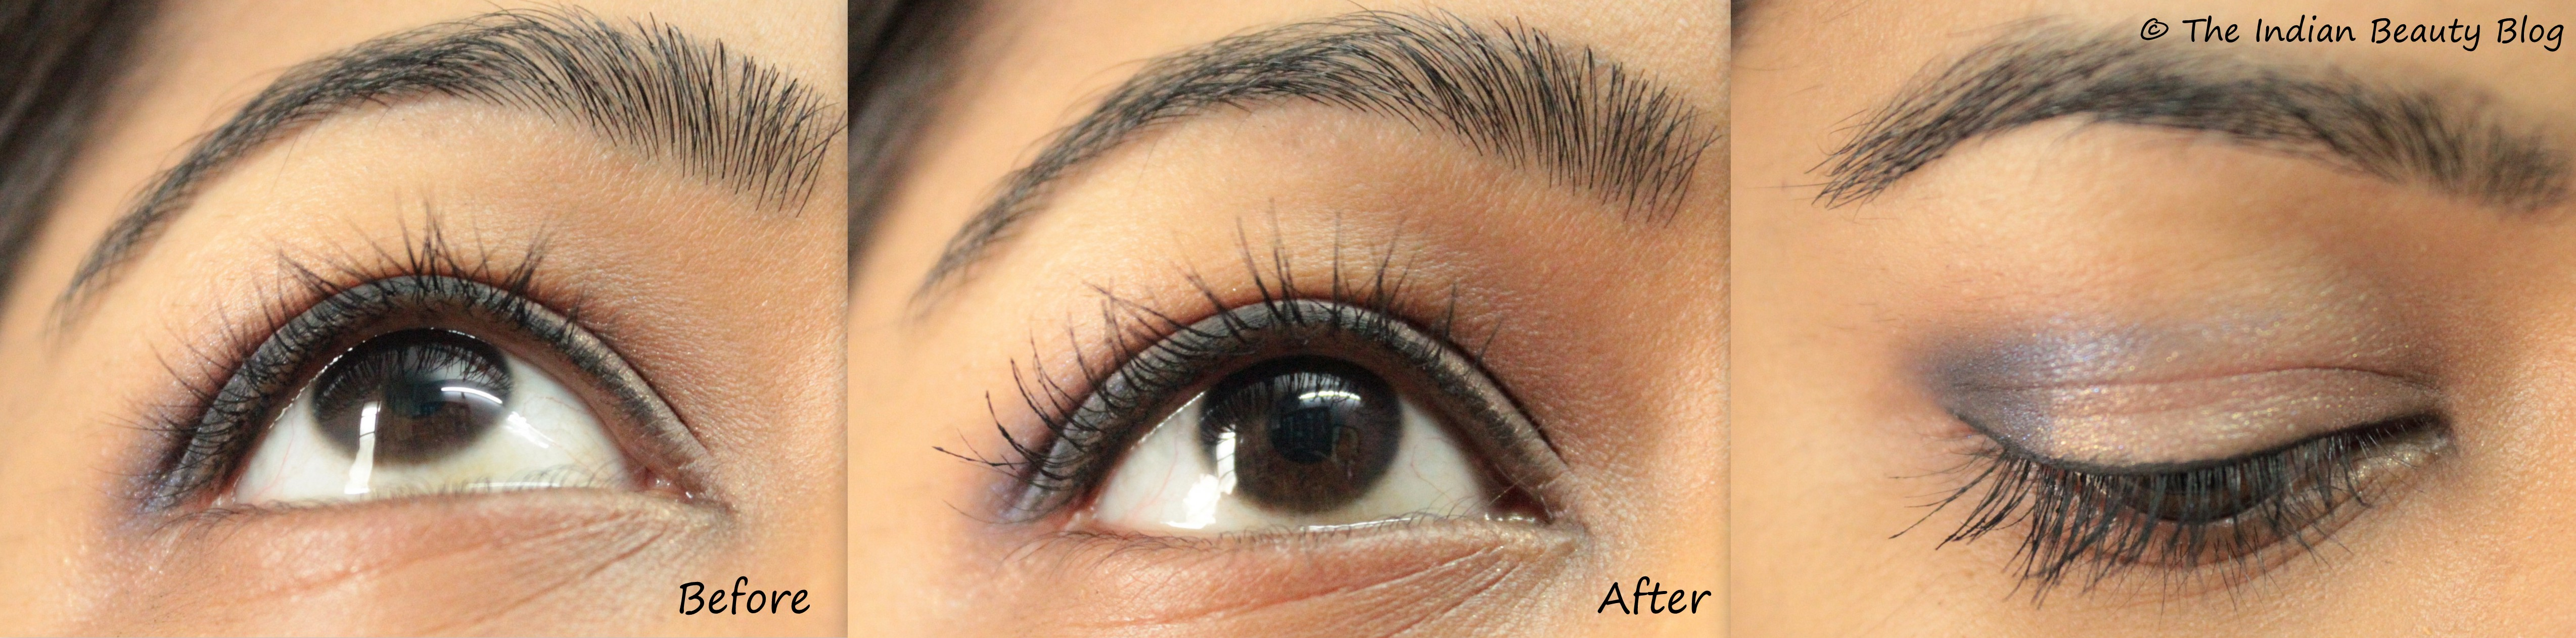 2f3a31b4eb1 Clinique High Impact Mascara- Review,swatch, EOTD - The Indian ...